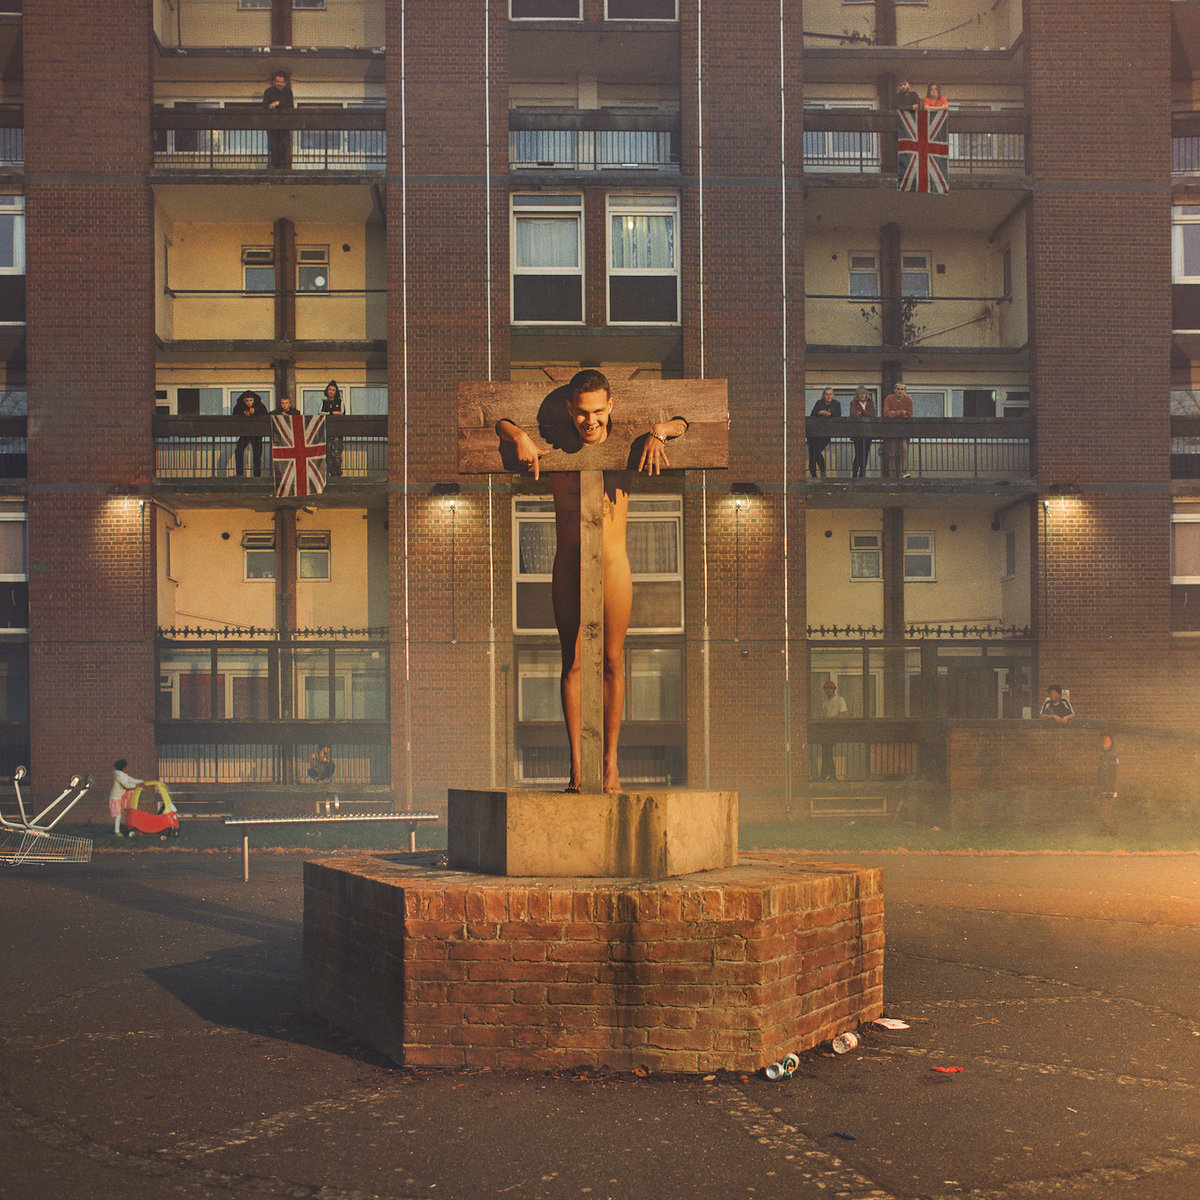 SLOWTHAI - NOTHING GREAT ABOUT BRITAIN ALBUM ARTWORK